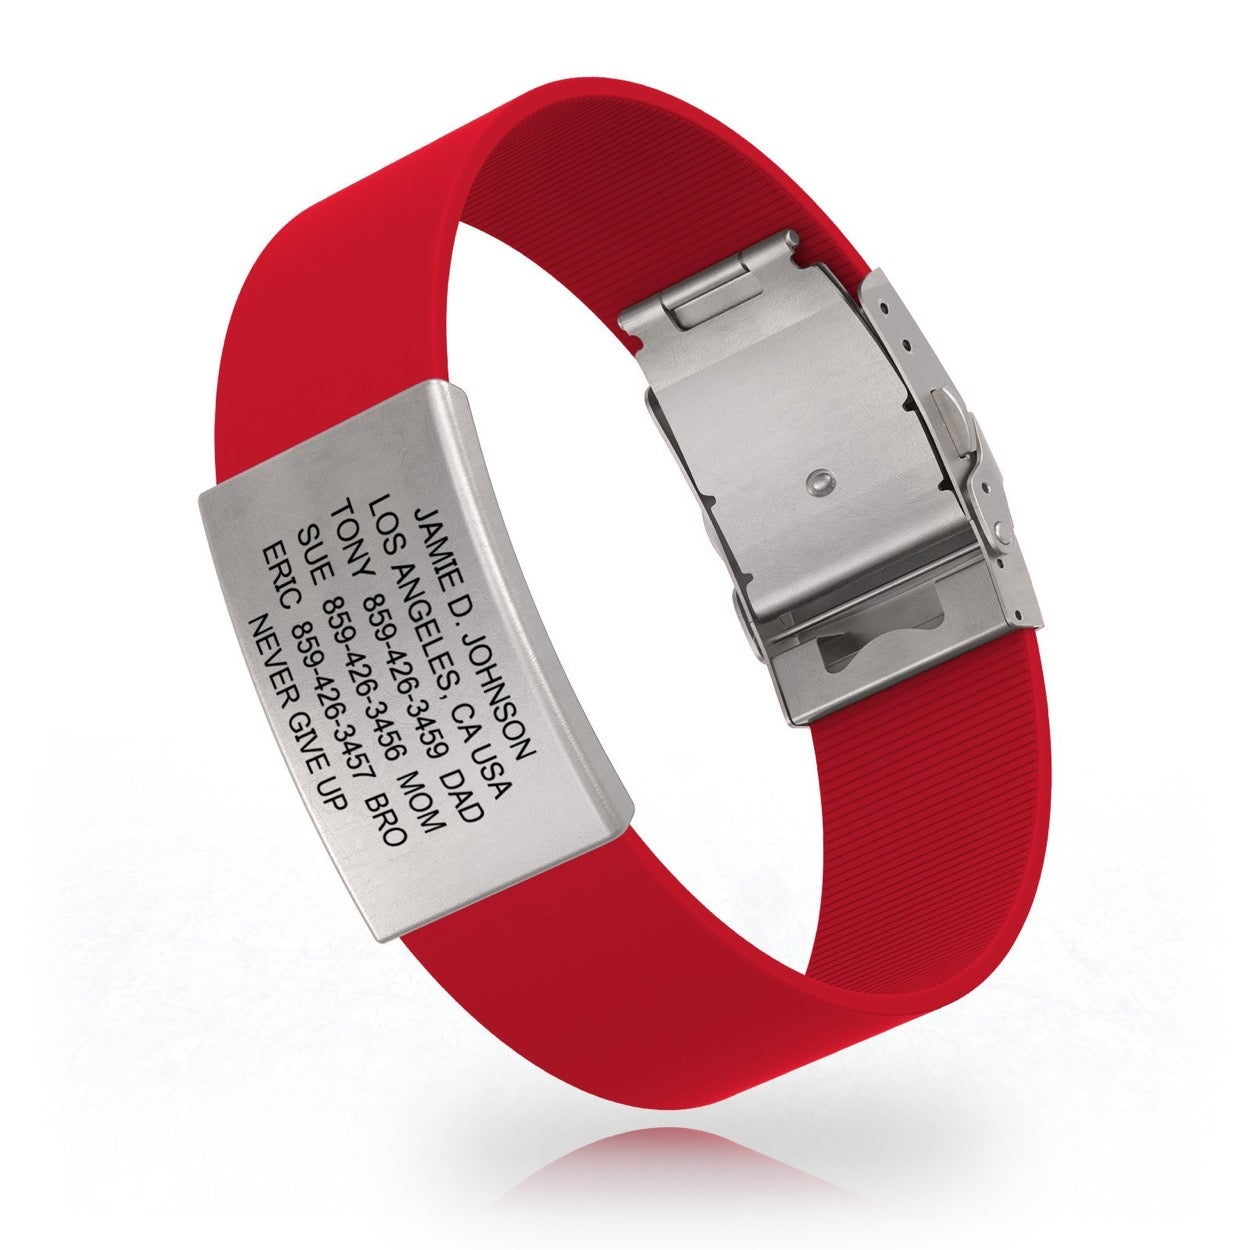 Road ID Safety Identification Band